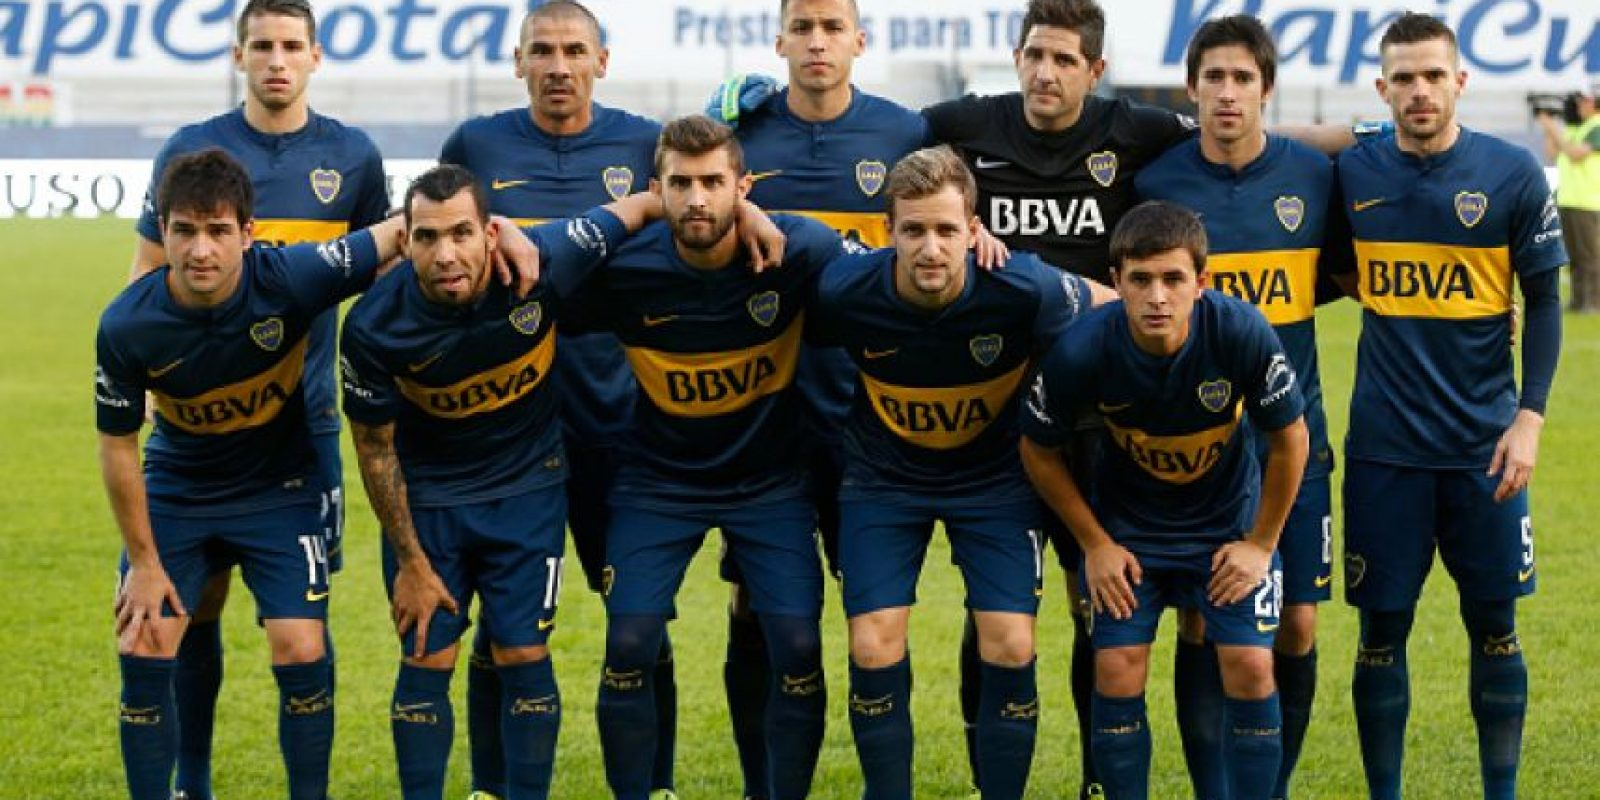 11. Boca Juniors (Argentina) Foto: Getty Images